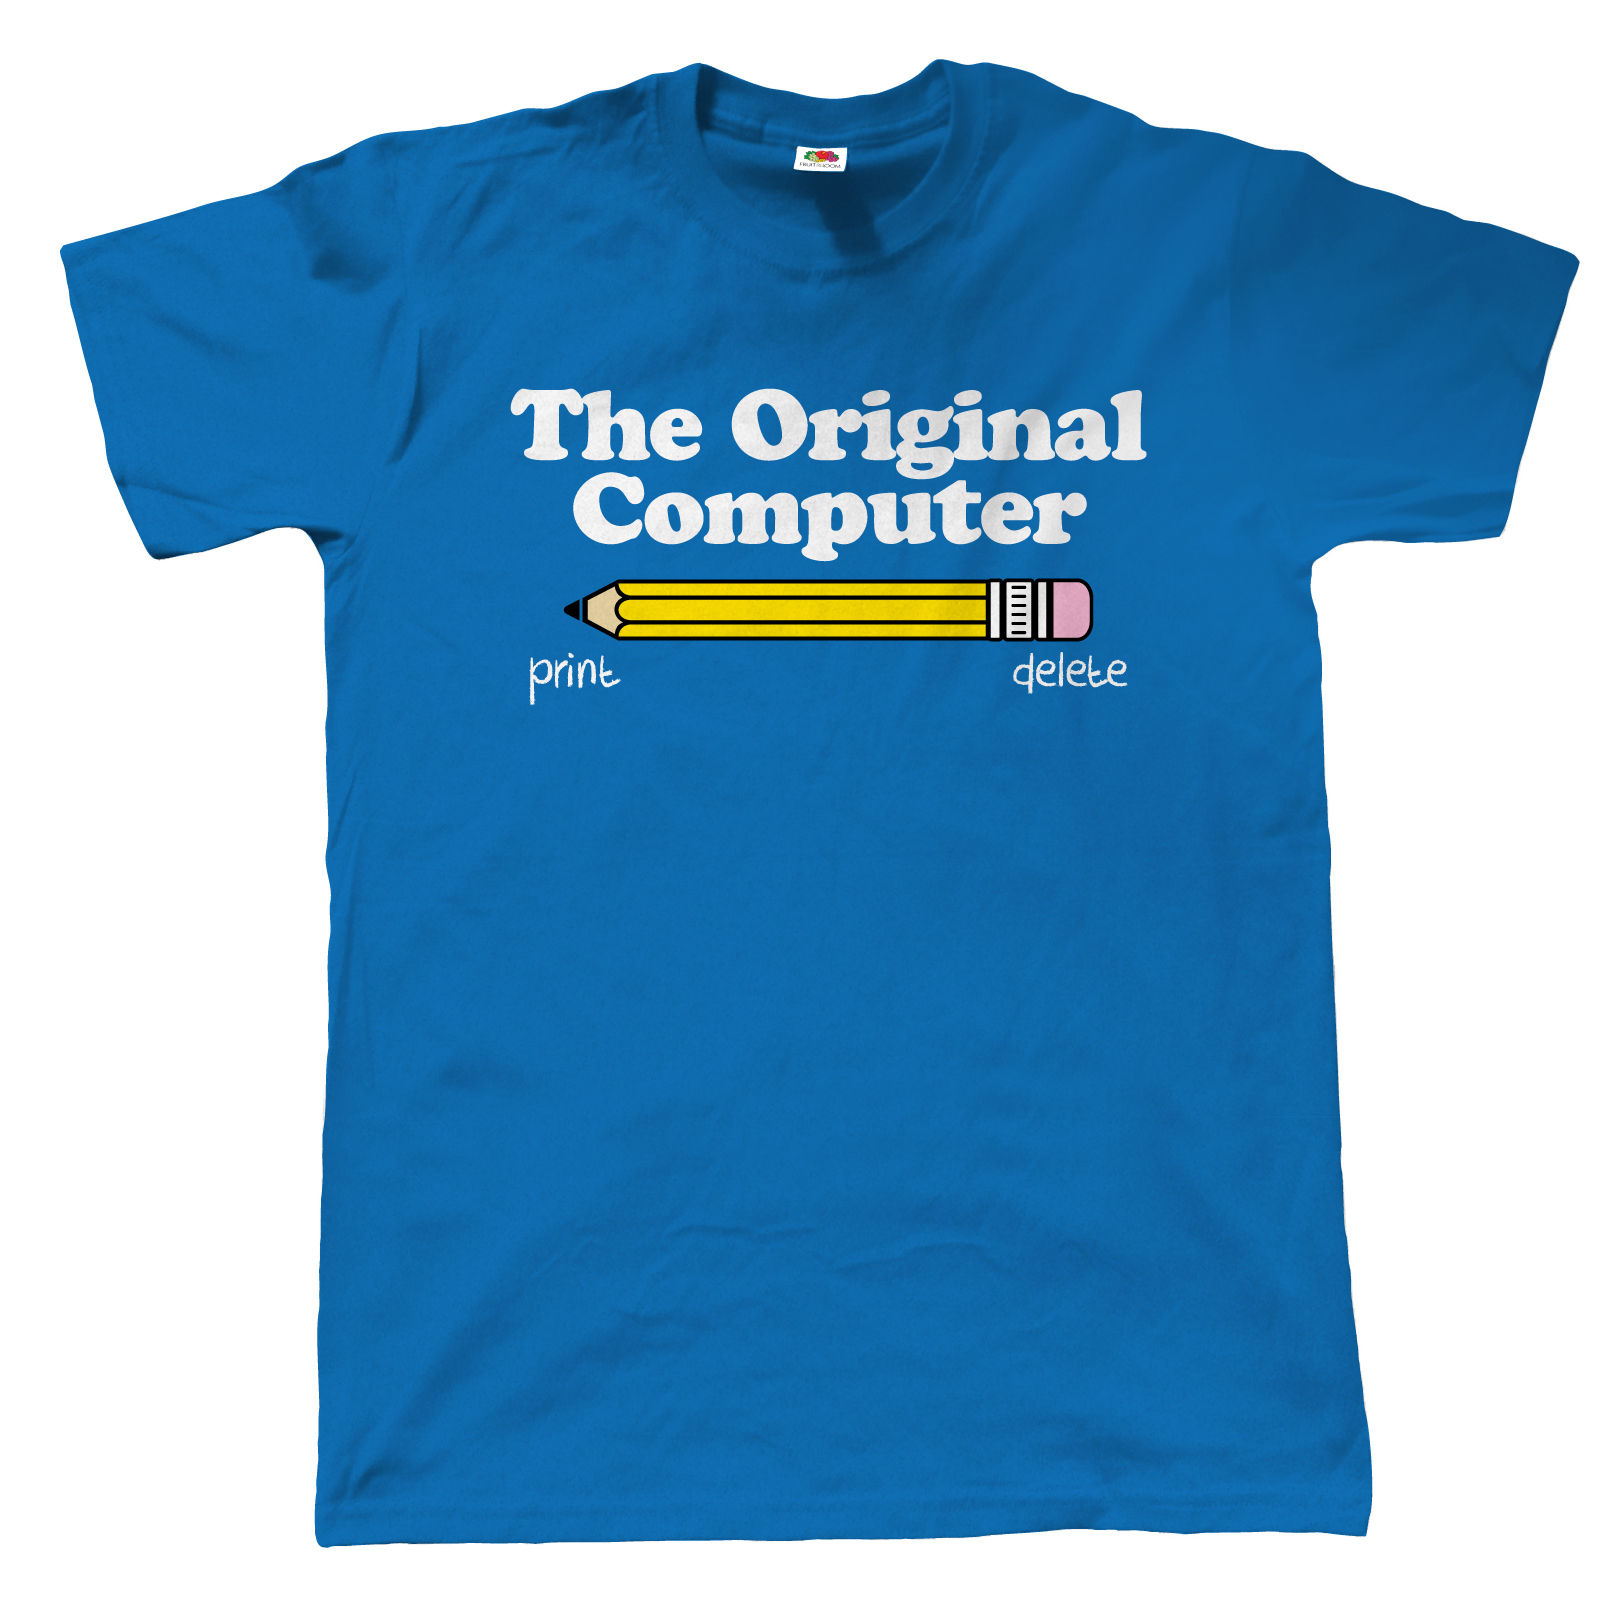 Gildan The Original Computer Mens Funny T Shirt - Gift for Dad IT Web Developer Coder Short Sleeve T-Shirts Man Clothing